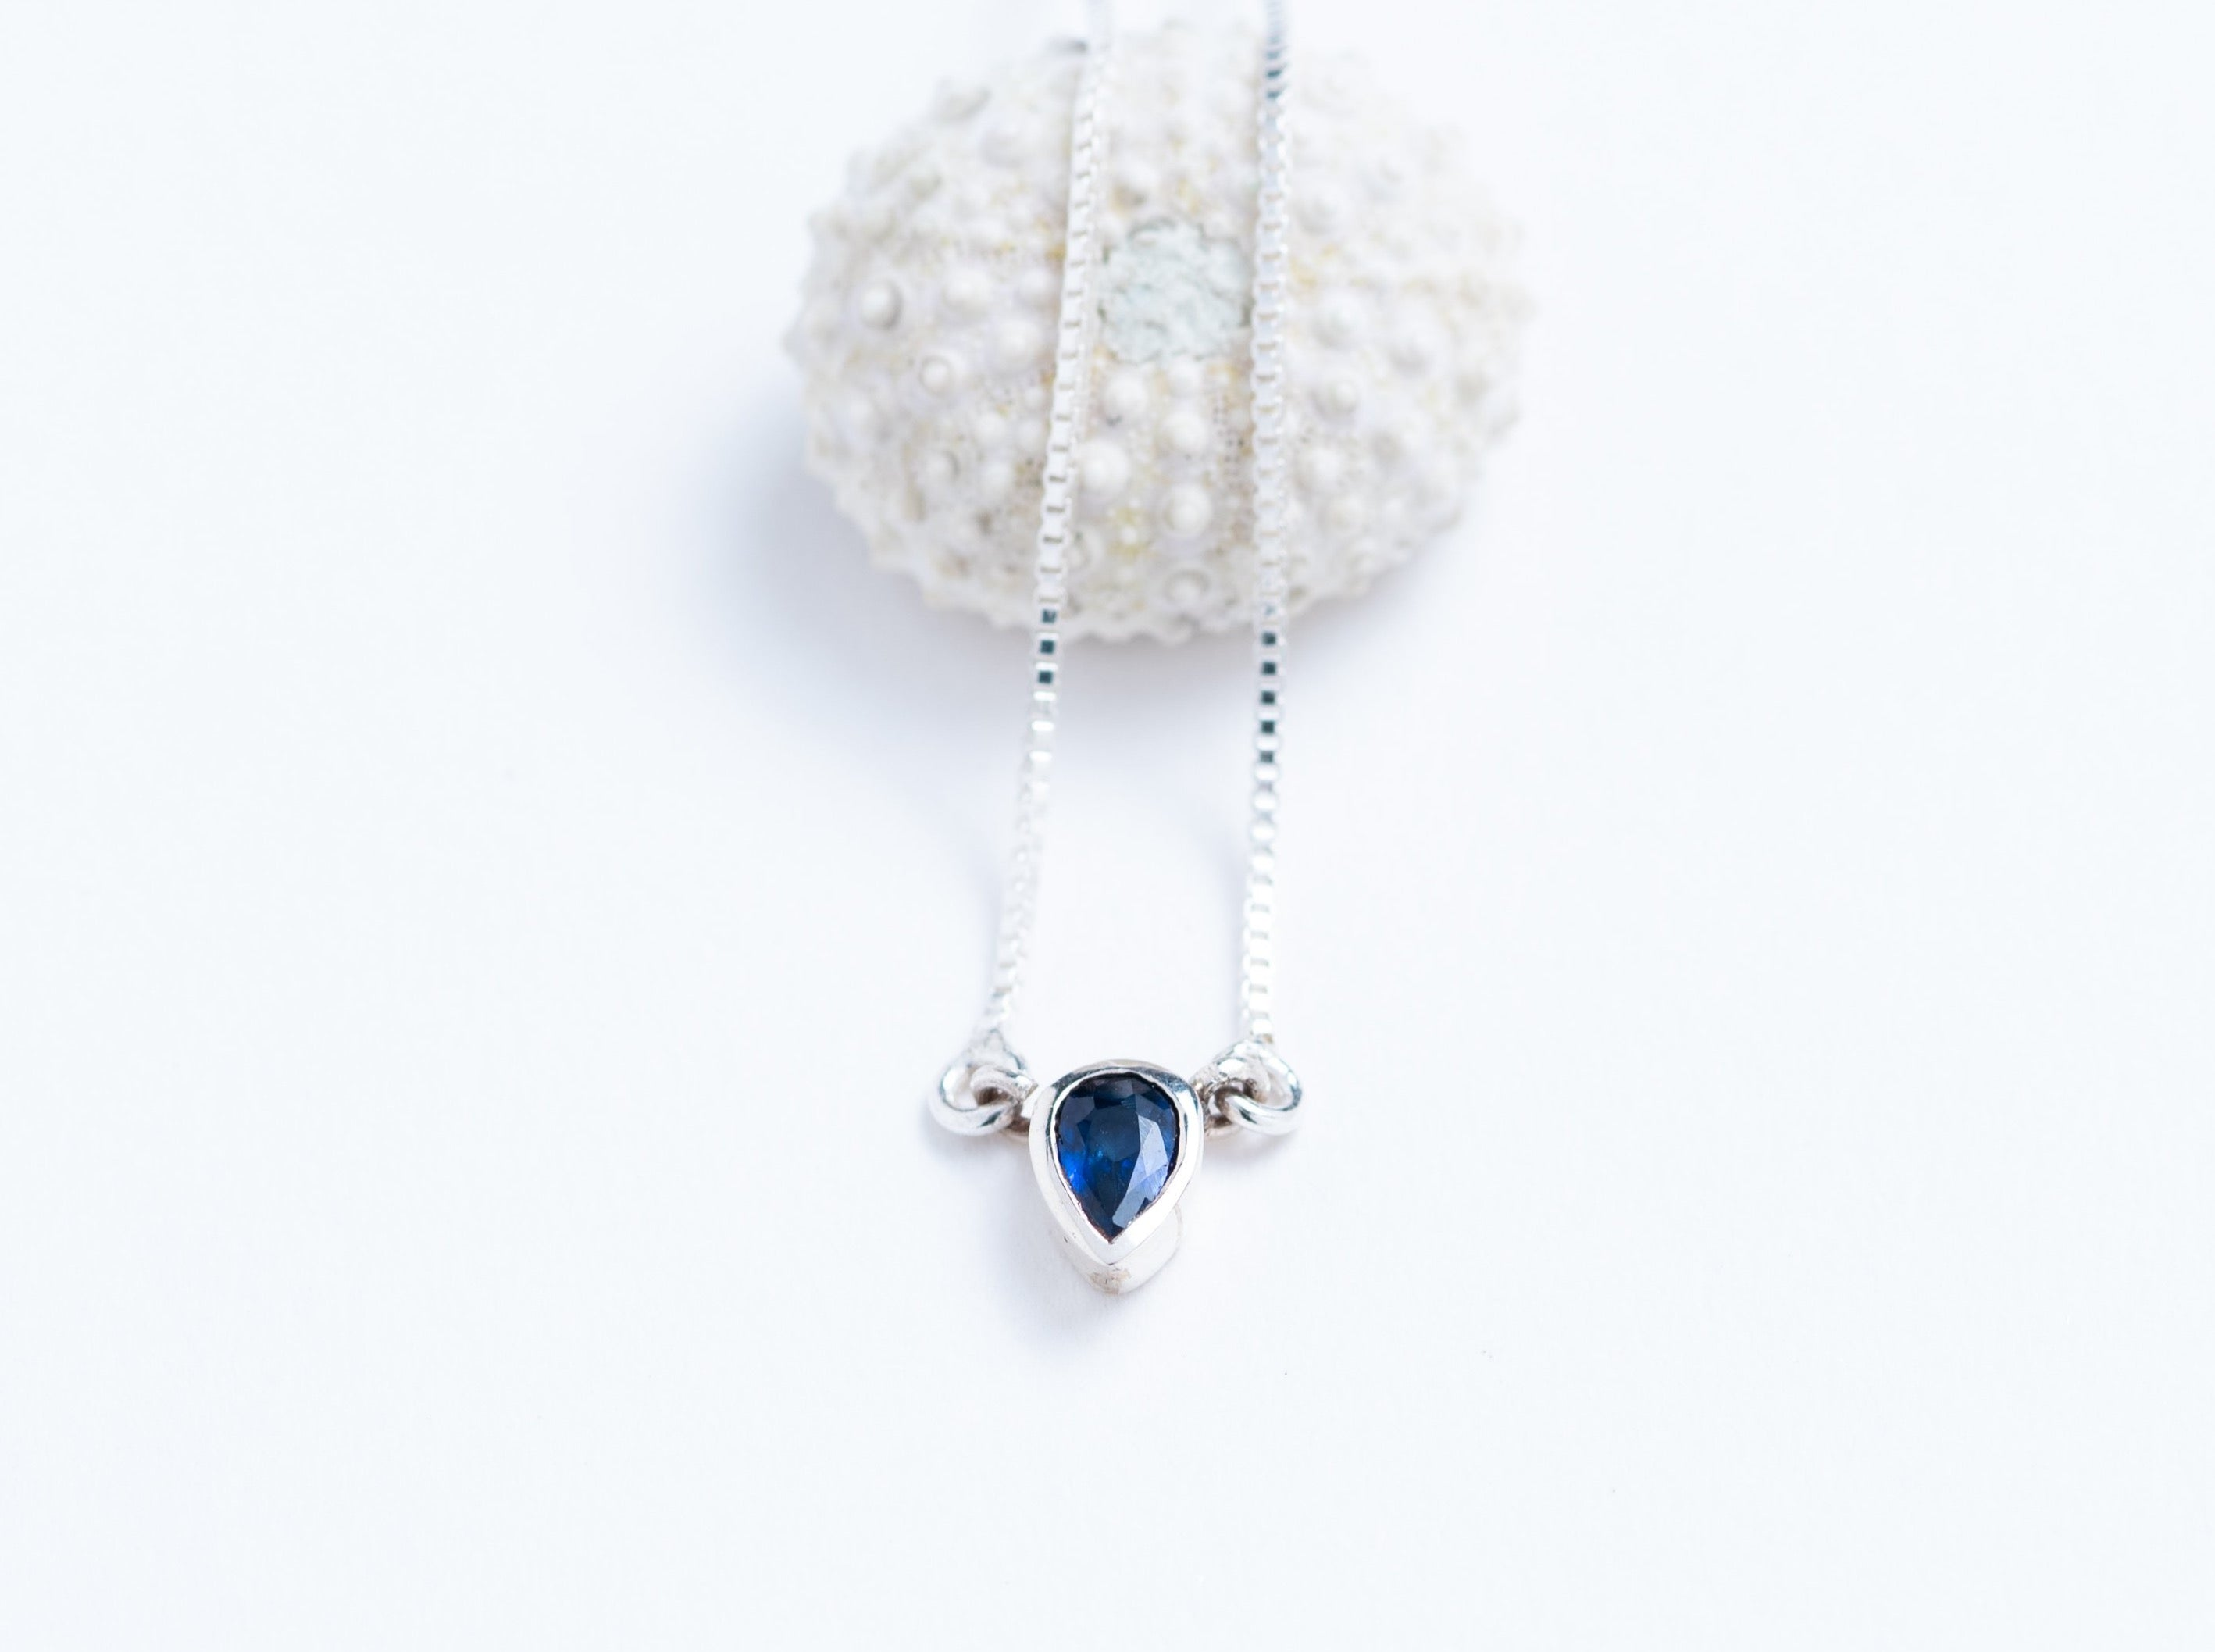 Faceted Sapphire and Sterling Silver Solitaire Pendant